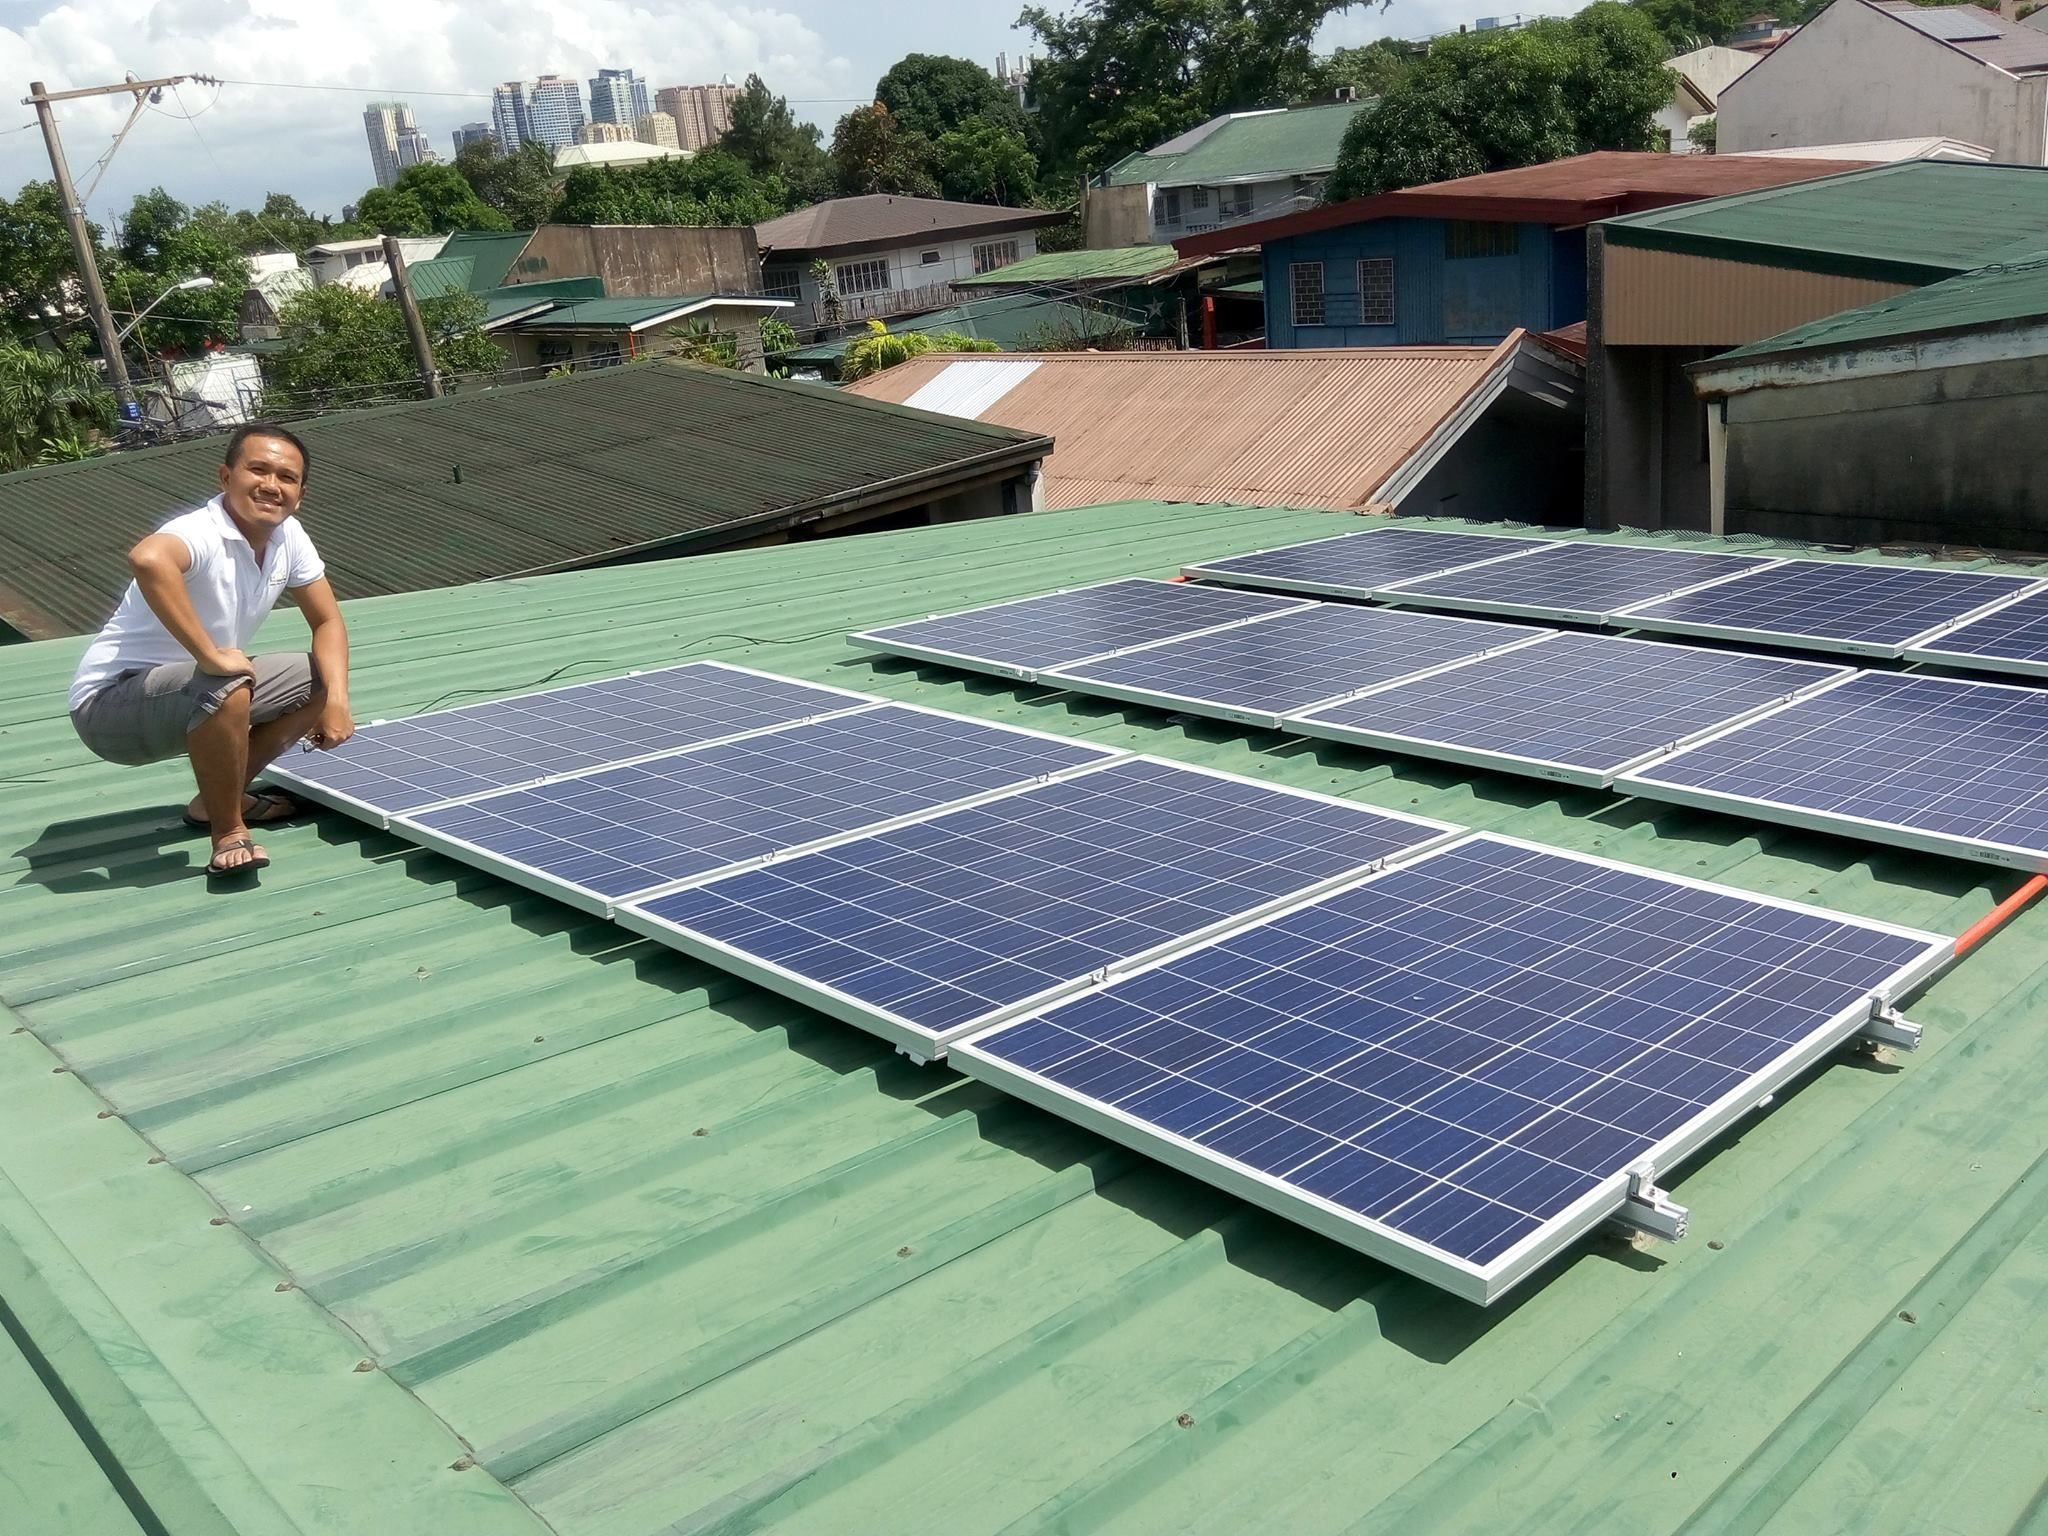 The installation of solar power energy producing device is